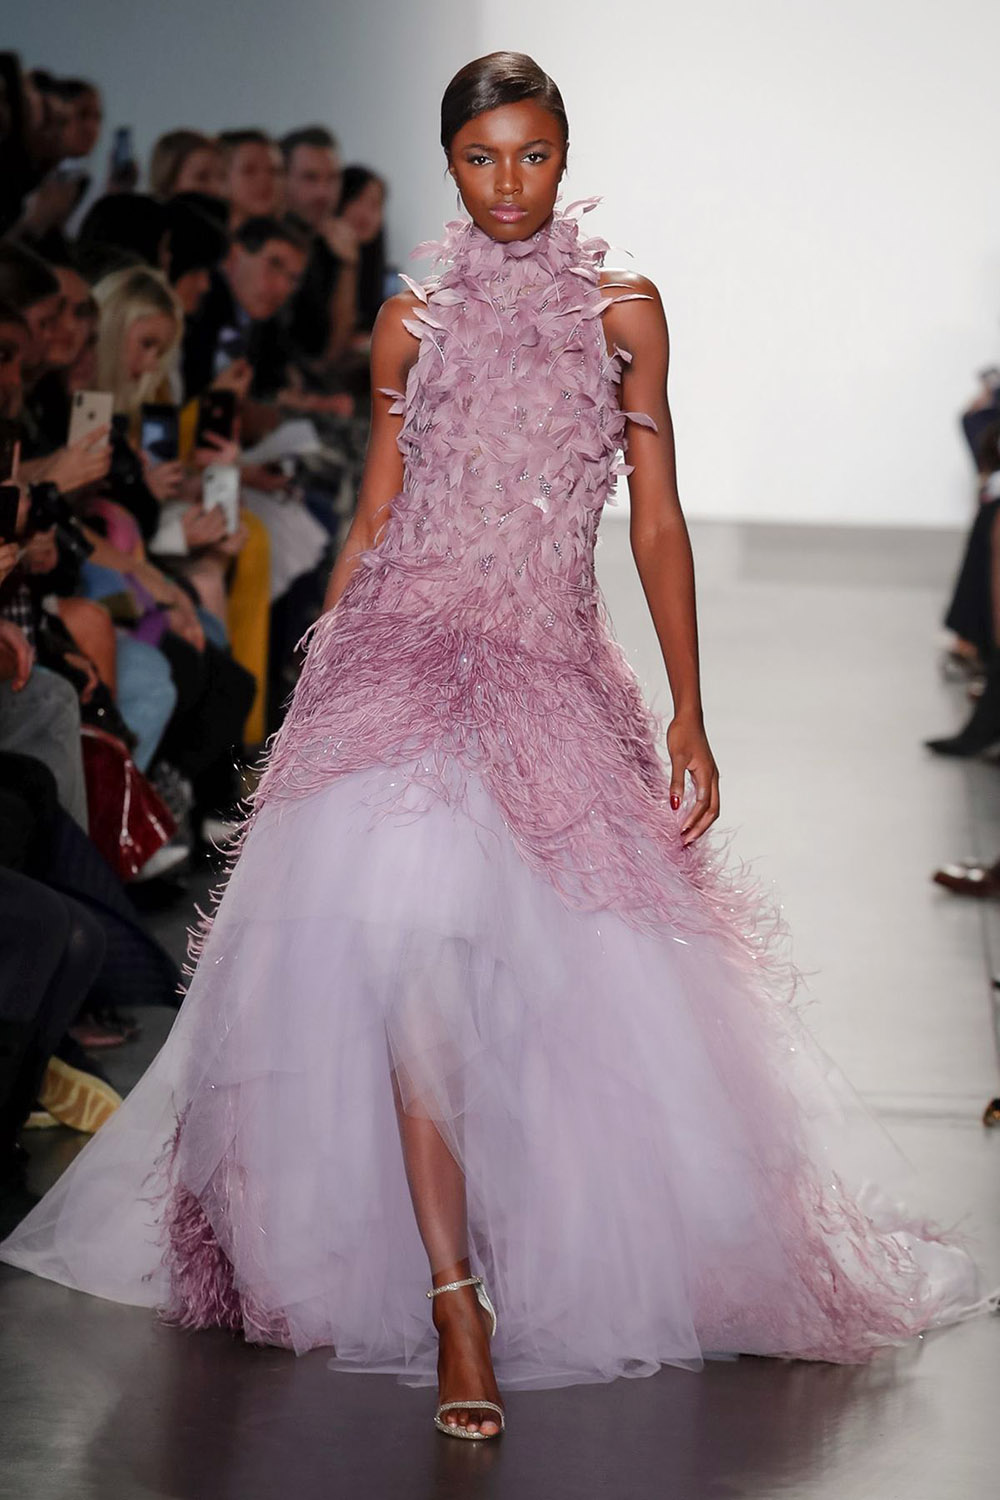 Best NYFW Looks I Pamella Roland Fall 2019 Collection #NYFW #Fall2019 #FW19 #Runway